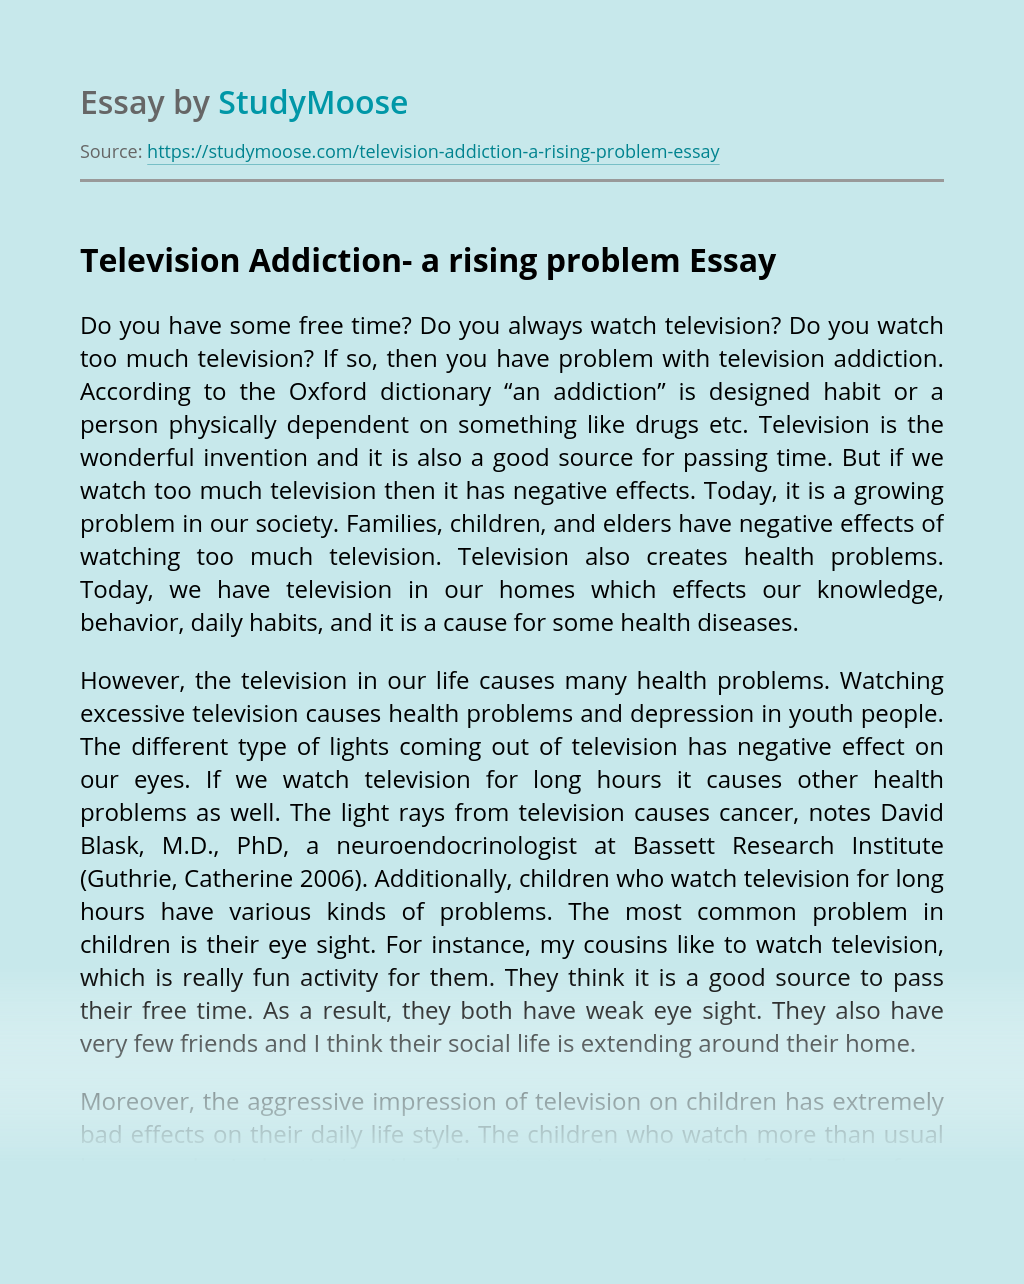 Television Addiction- a rising problem